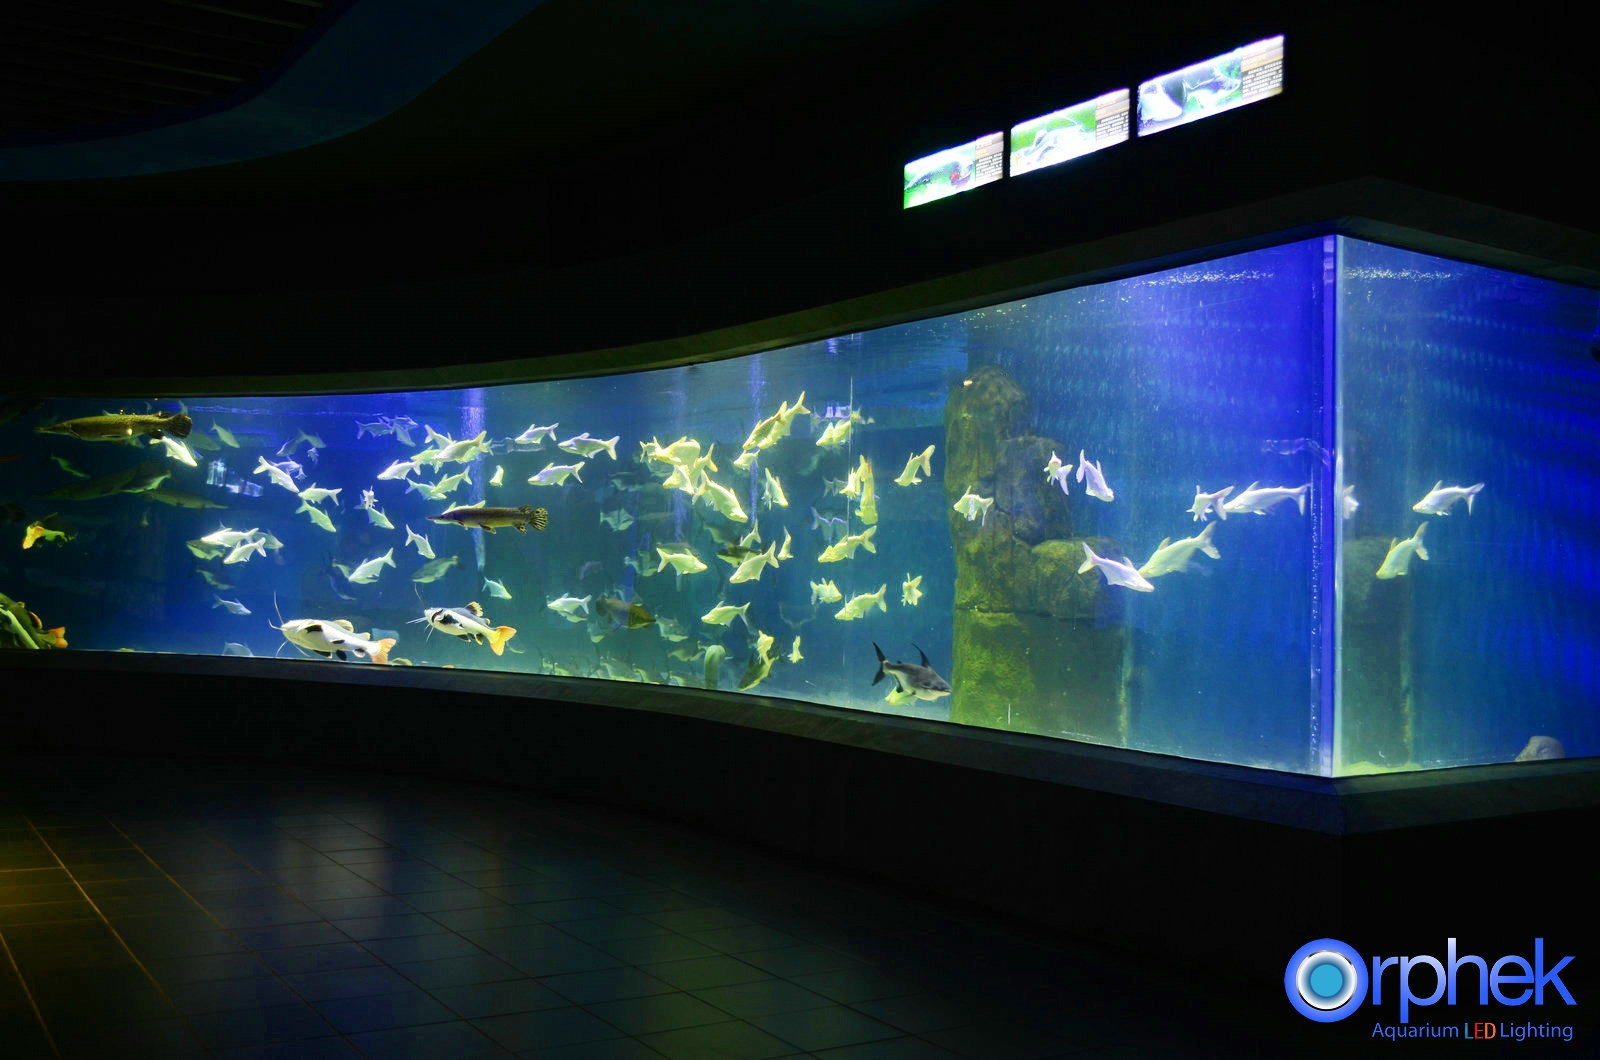 public aquarium LED lighting special exhibition zone